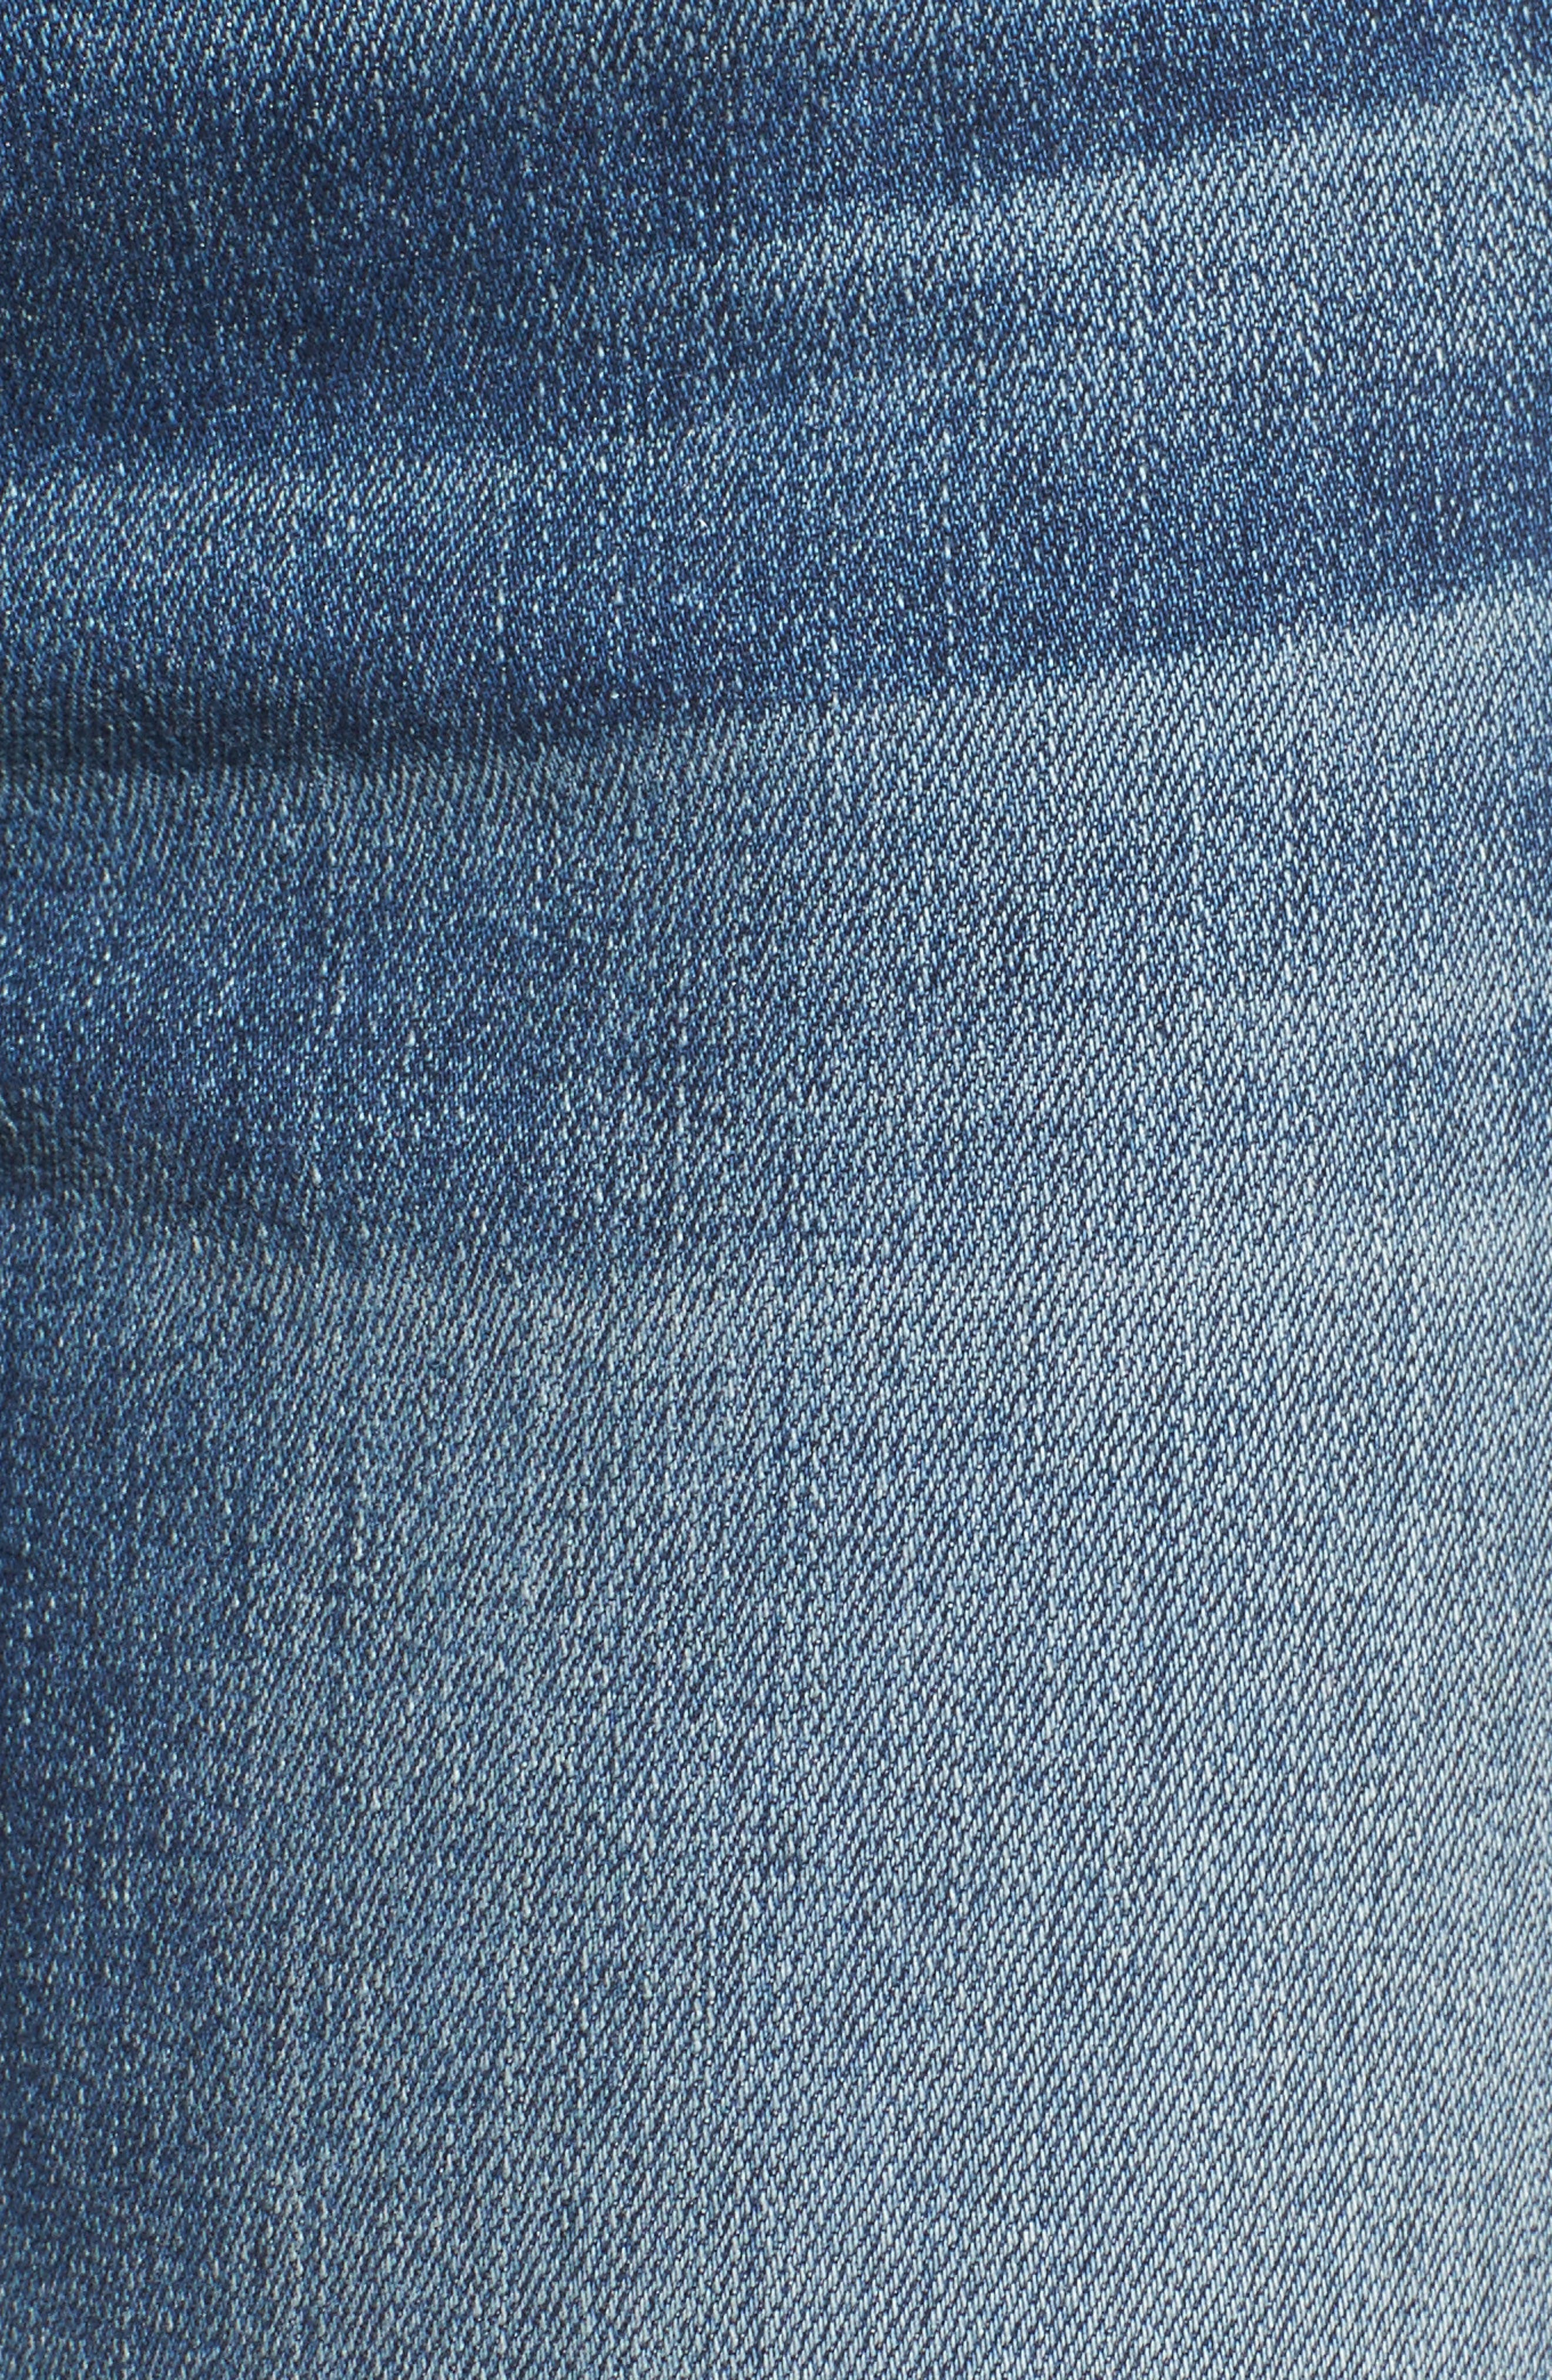 Crop Bootcut Jeans,                             Alternate thumbnail 5, color,                             Wall Street Heritage